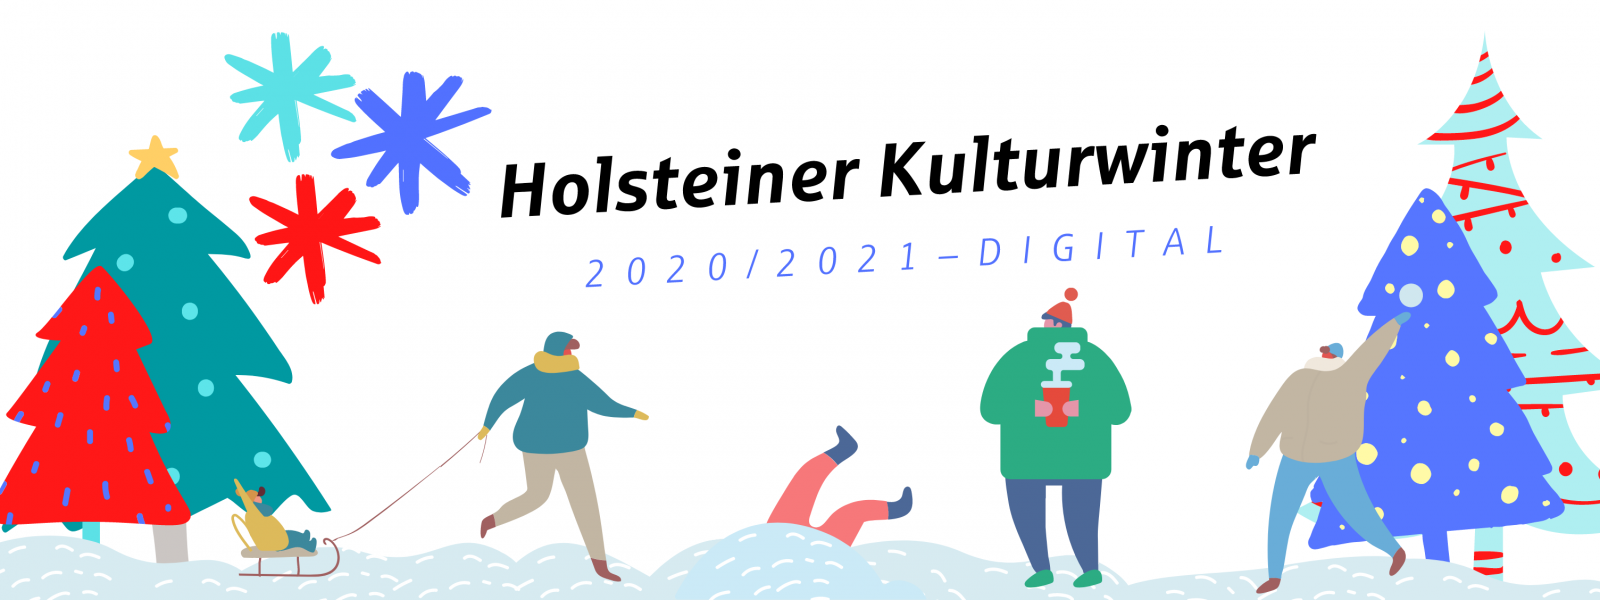 Holsteiner Kulturwinter Header 4